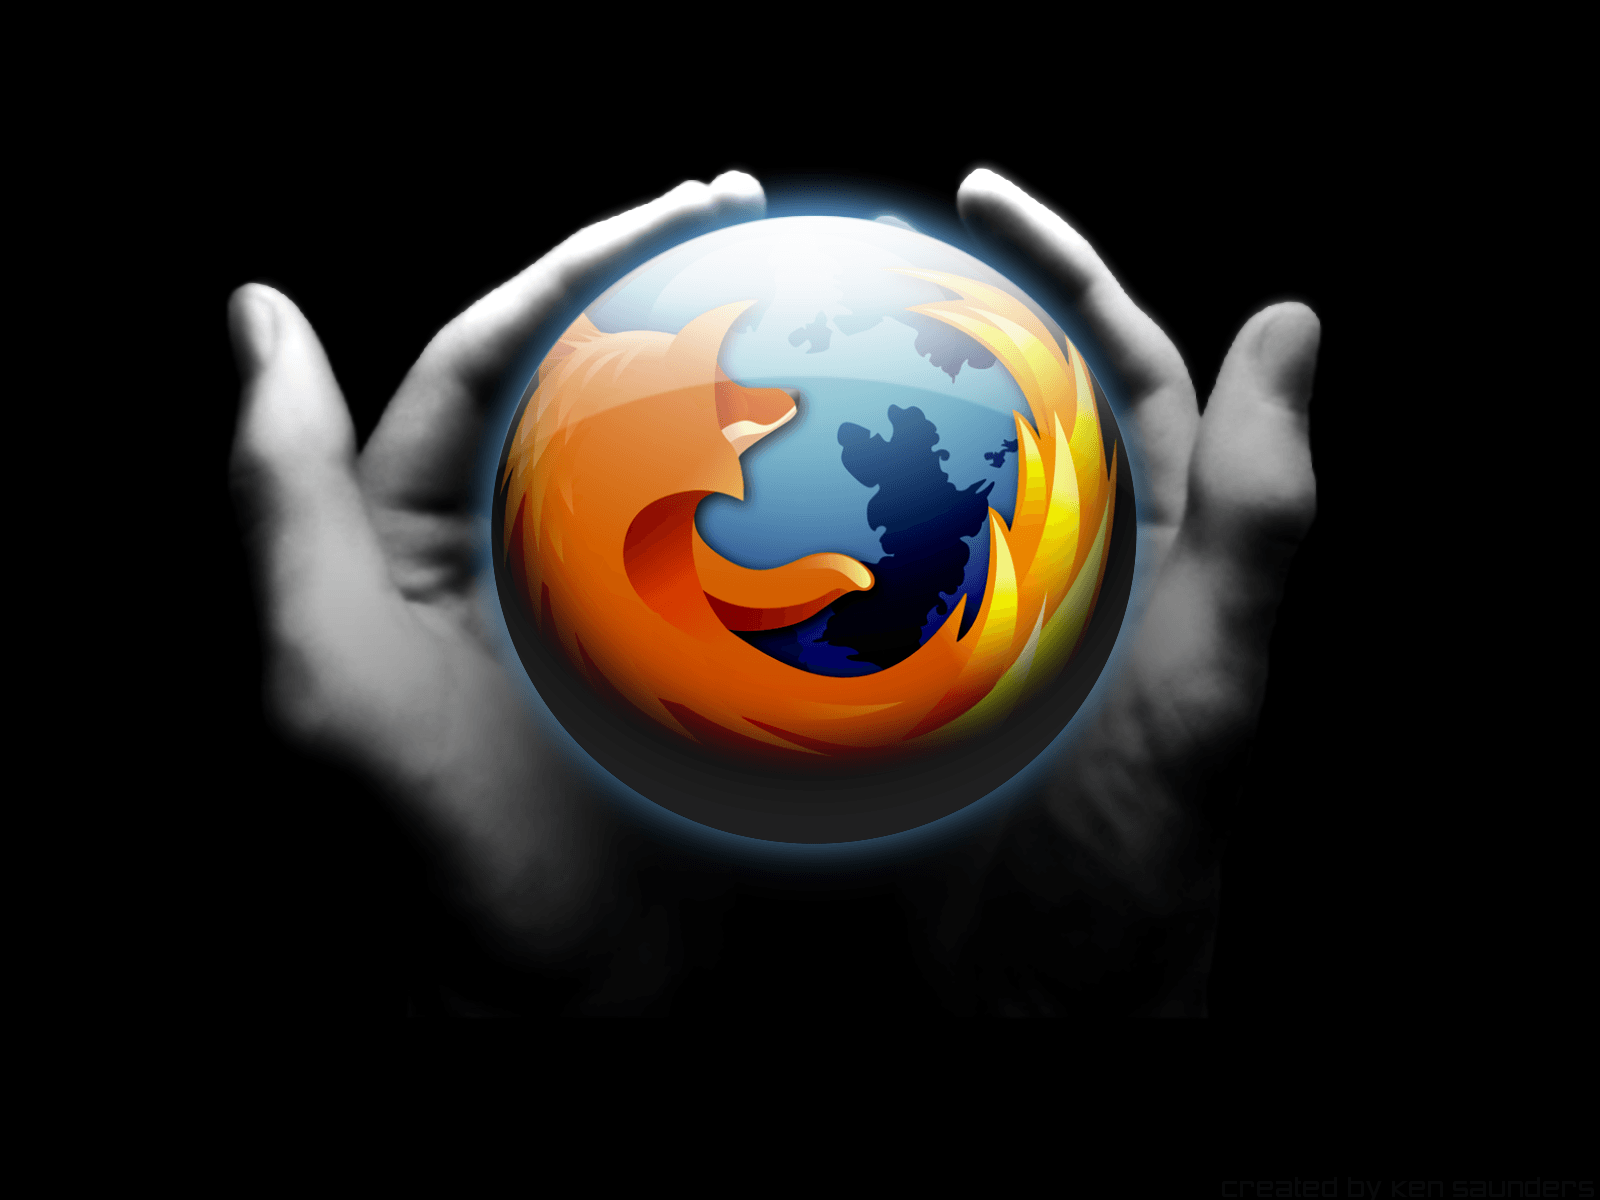 Mozilla Firefox Wallpapers - Wallpaper Cave